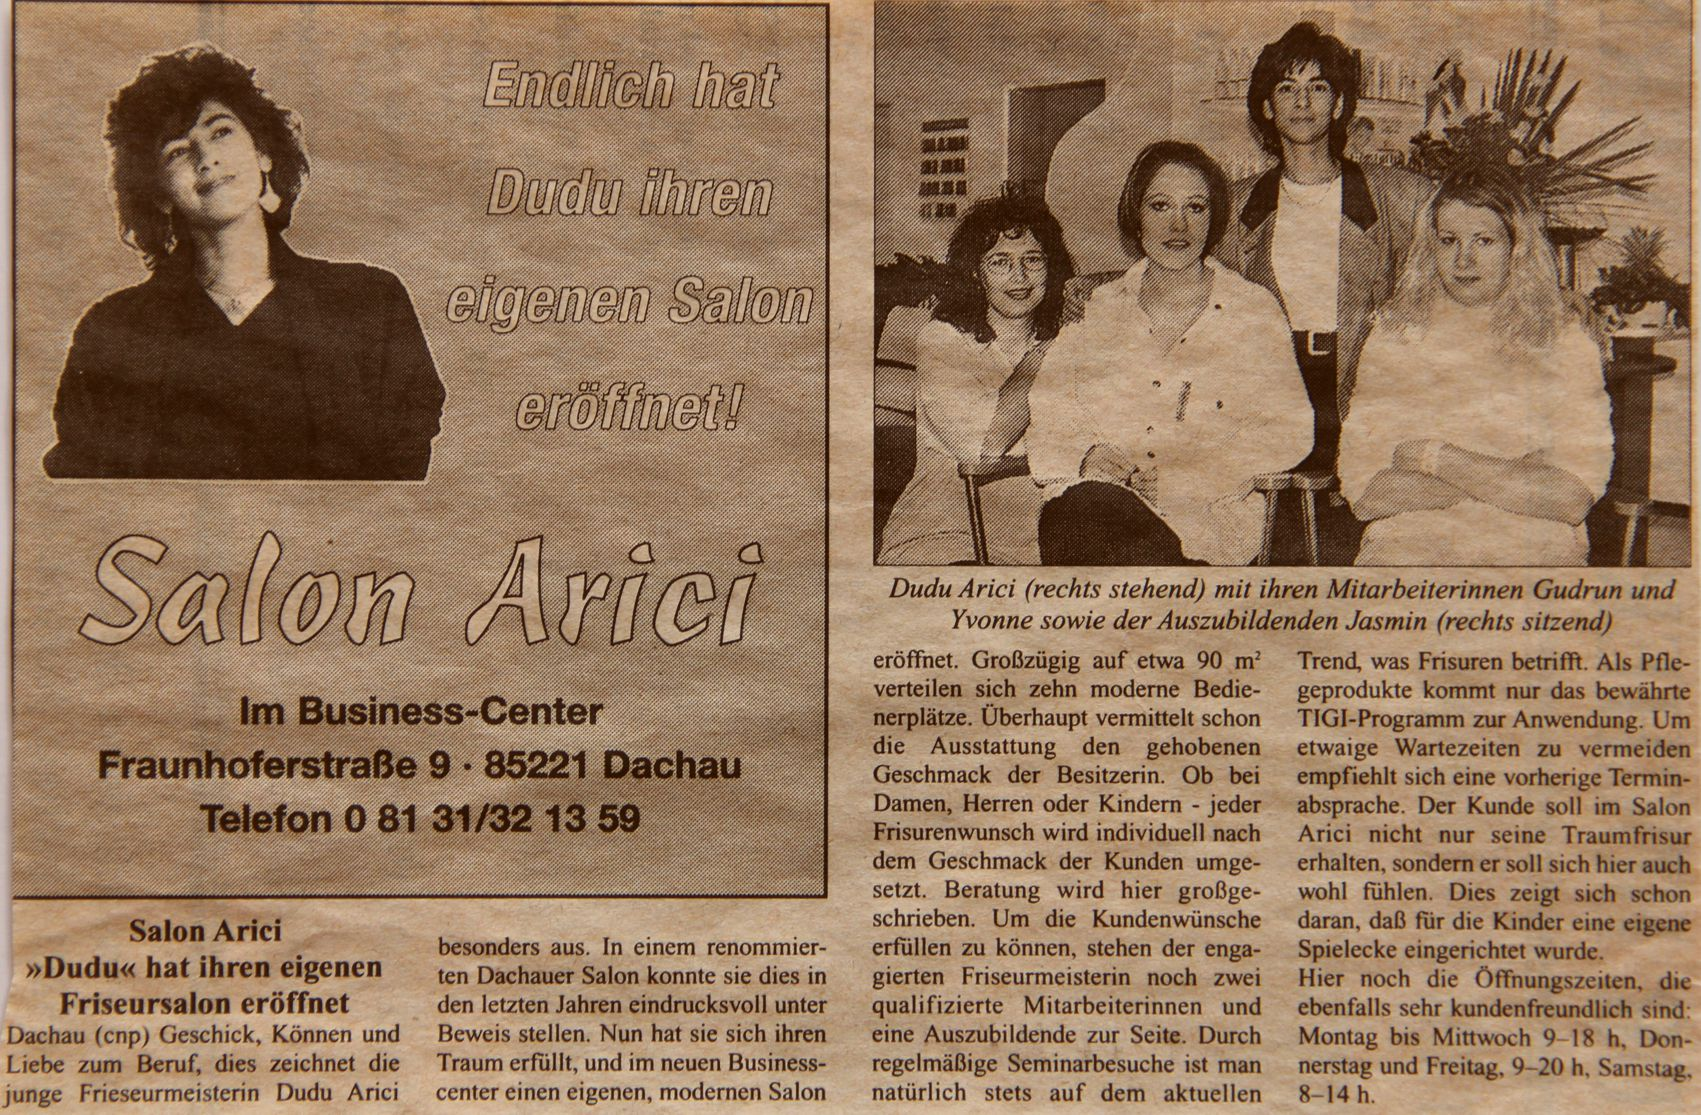 Salon Arici 1998